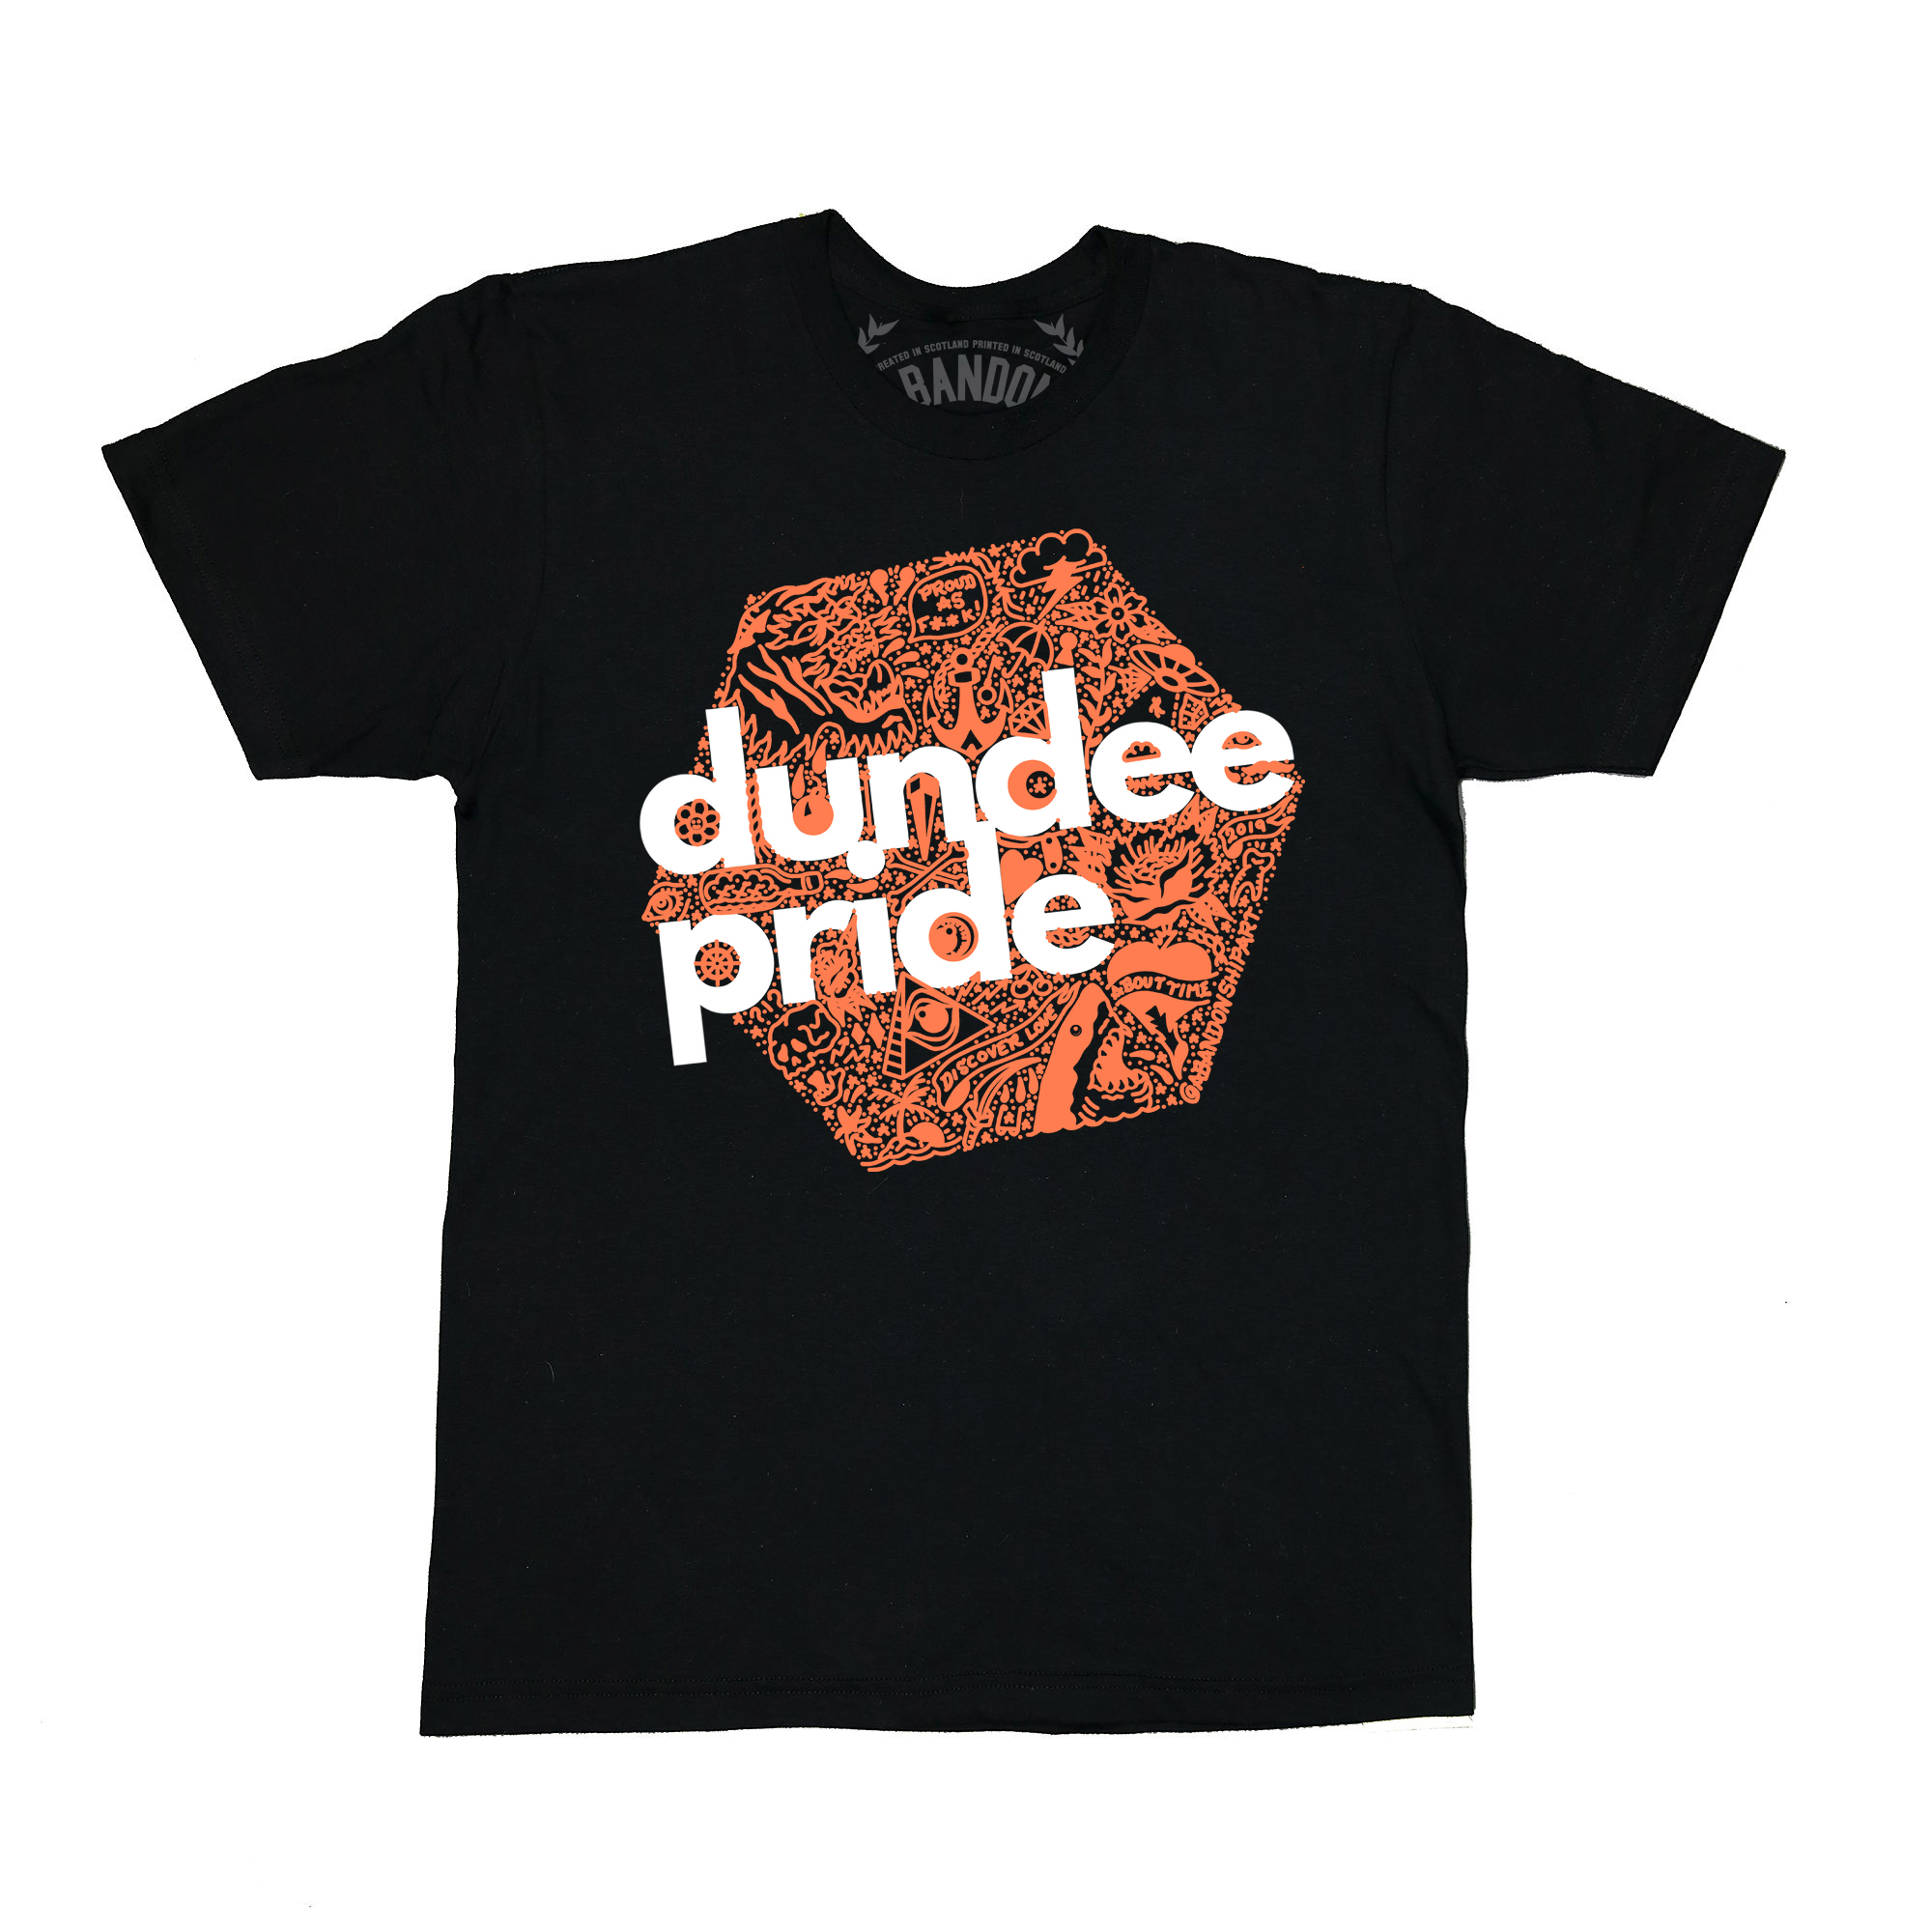 Get your Dundee Pride Merch - Show your Pride colours year round